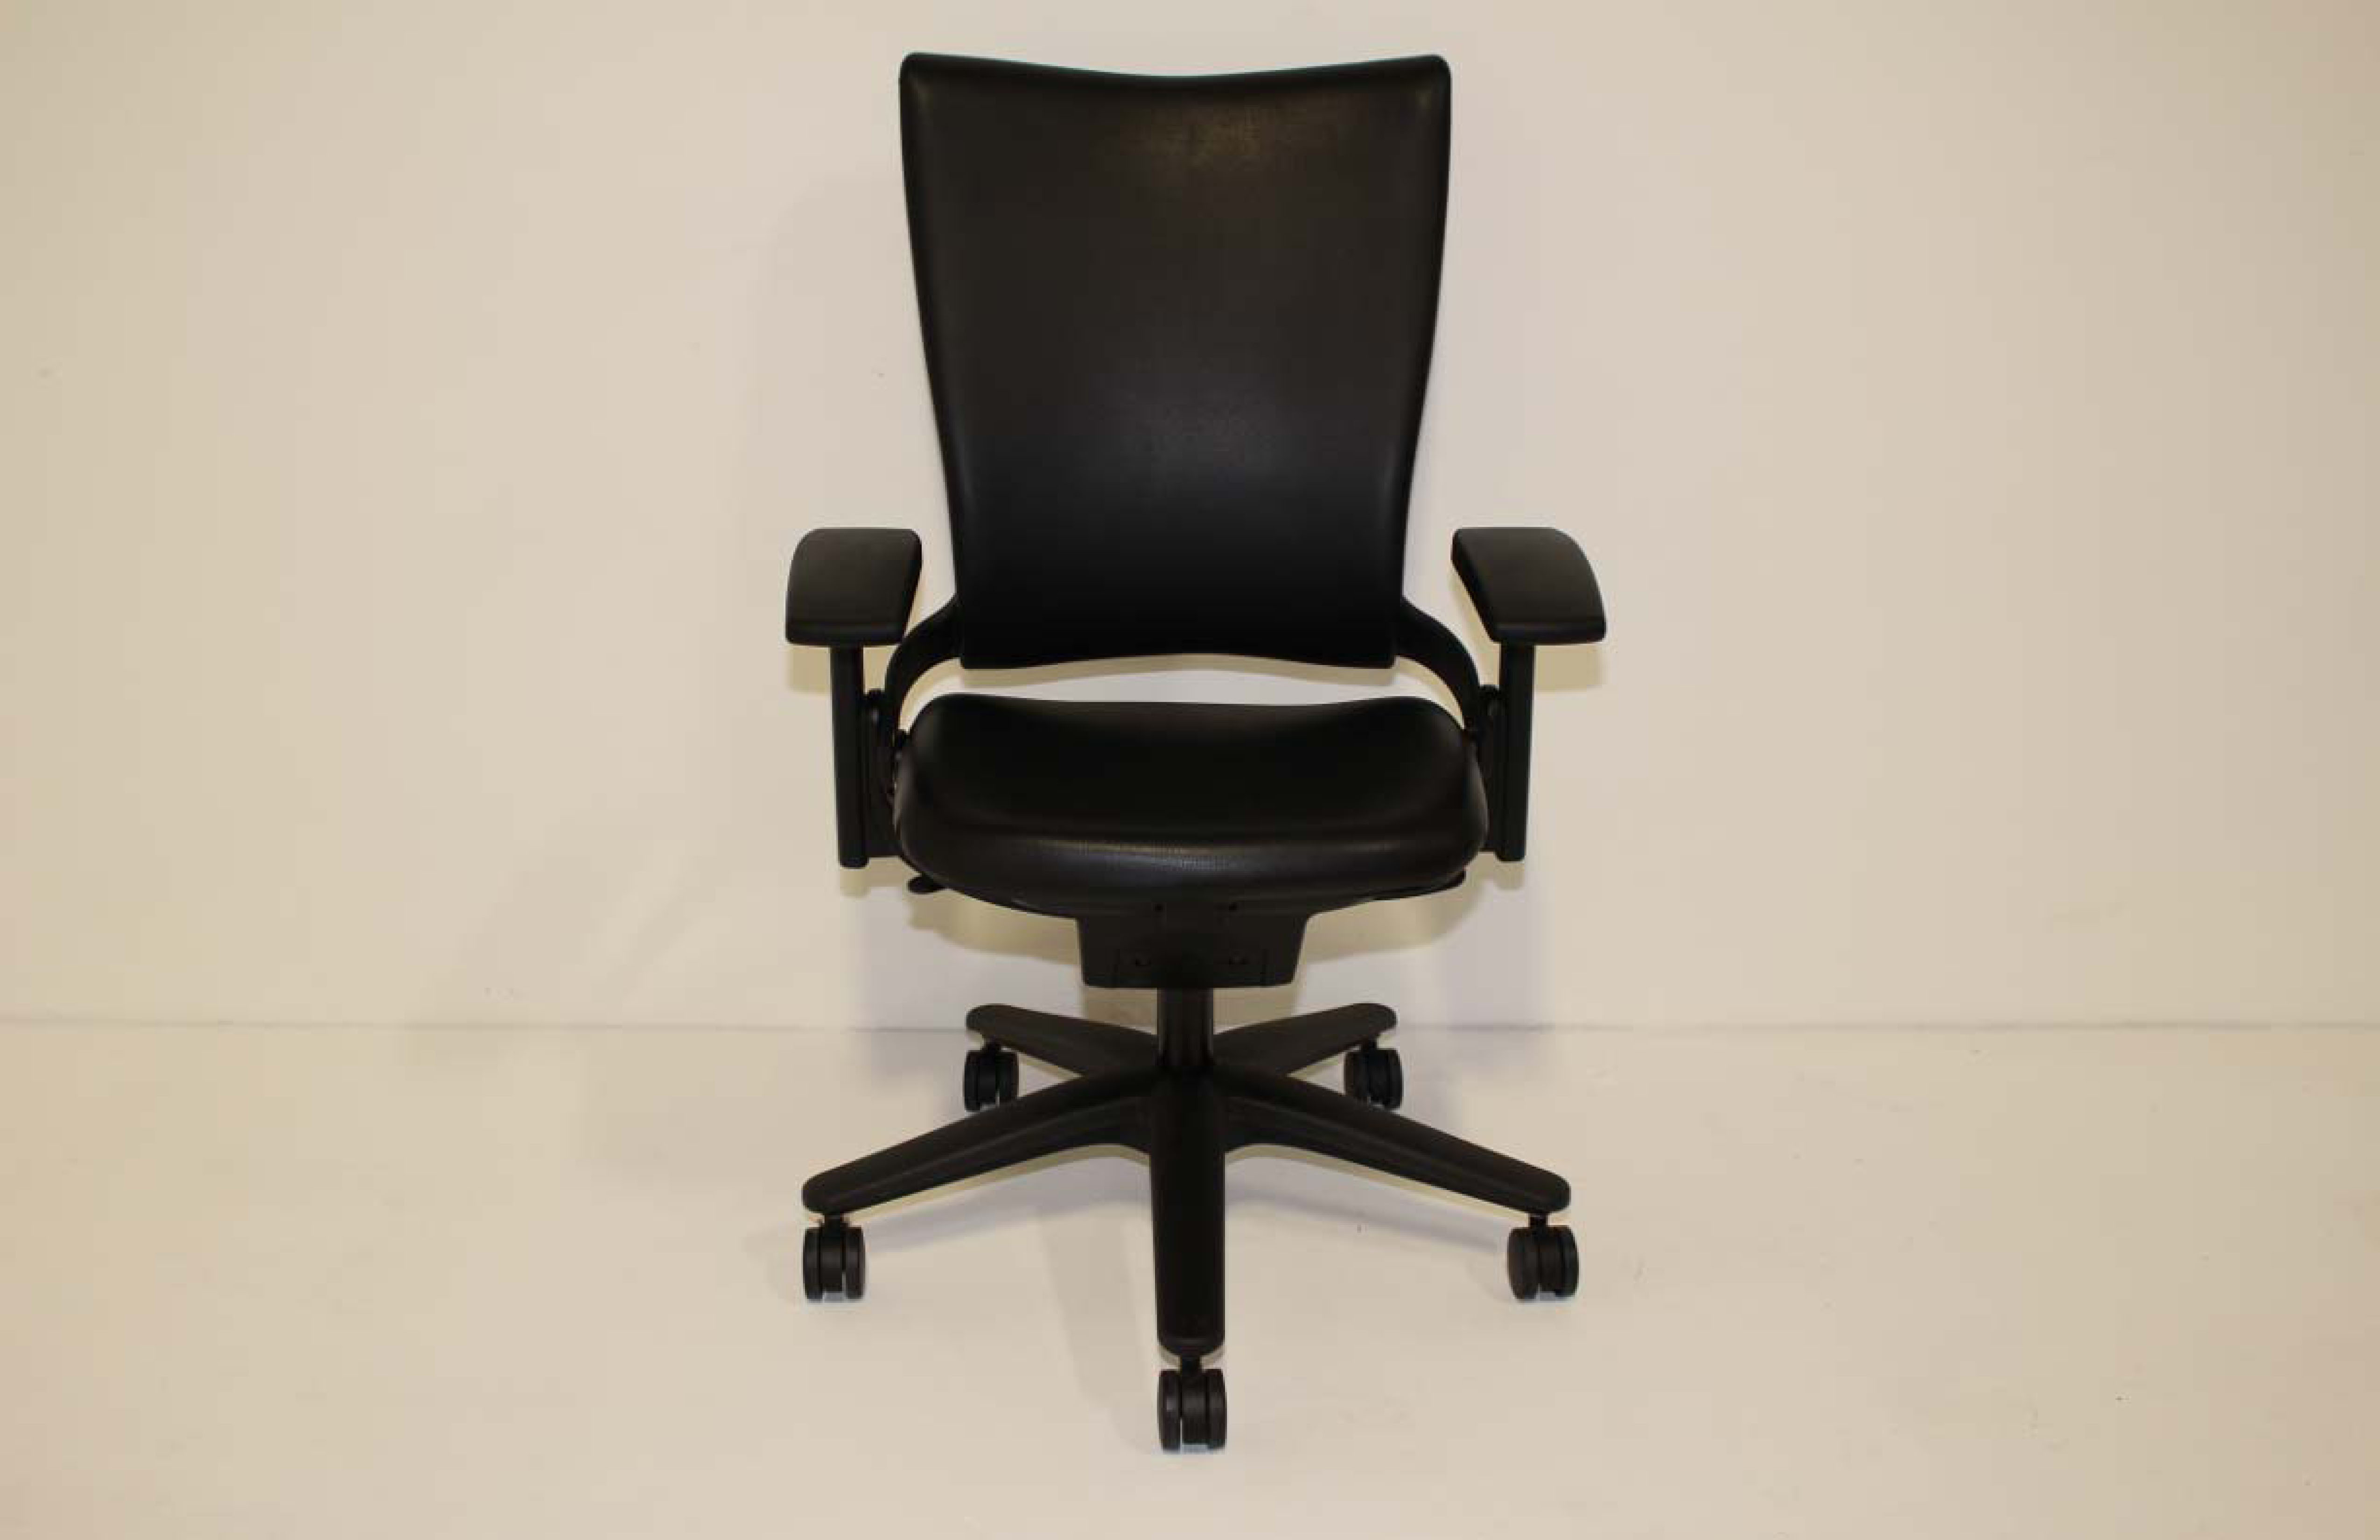 allsteel relate chair reviews stokke high alternative new workstations page  low and hi res image comparison